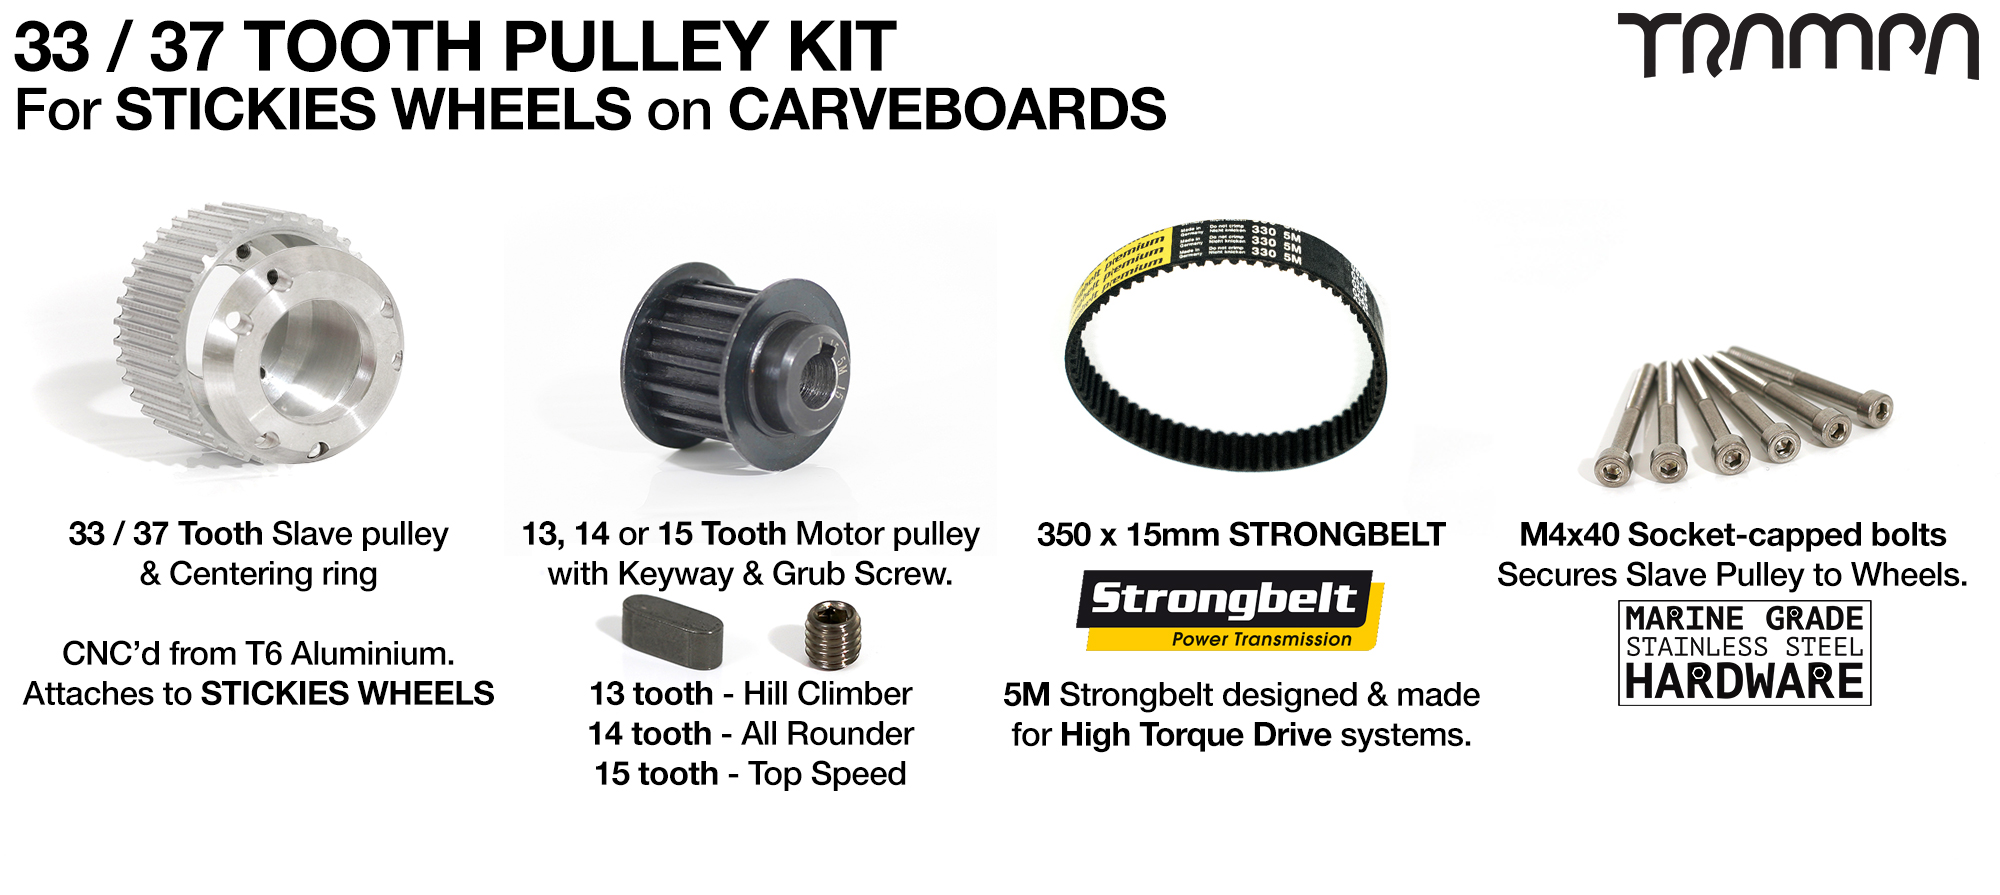 Complete Street Carver Pulley Kit with 15mm STRONGBELT